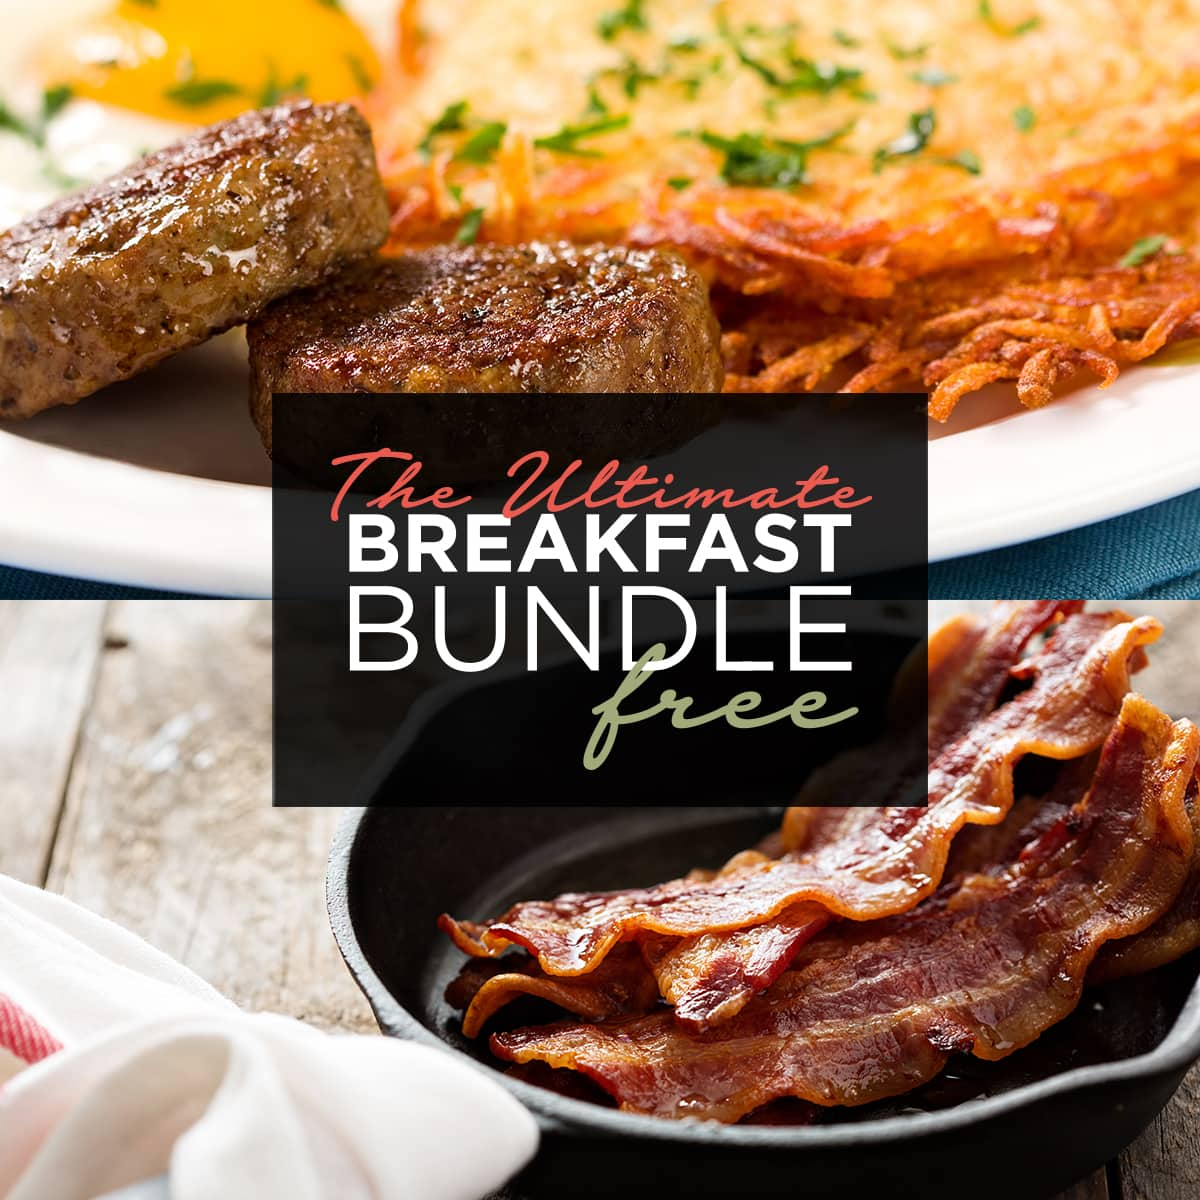 ButcherBox Deal: FREE ButcherBox Breakfast Bundle!